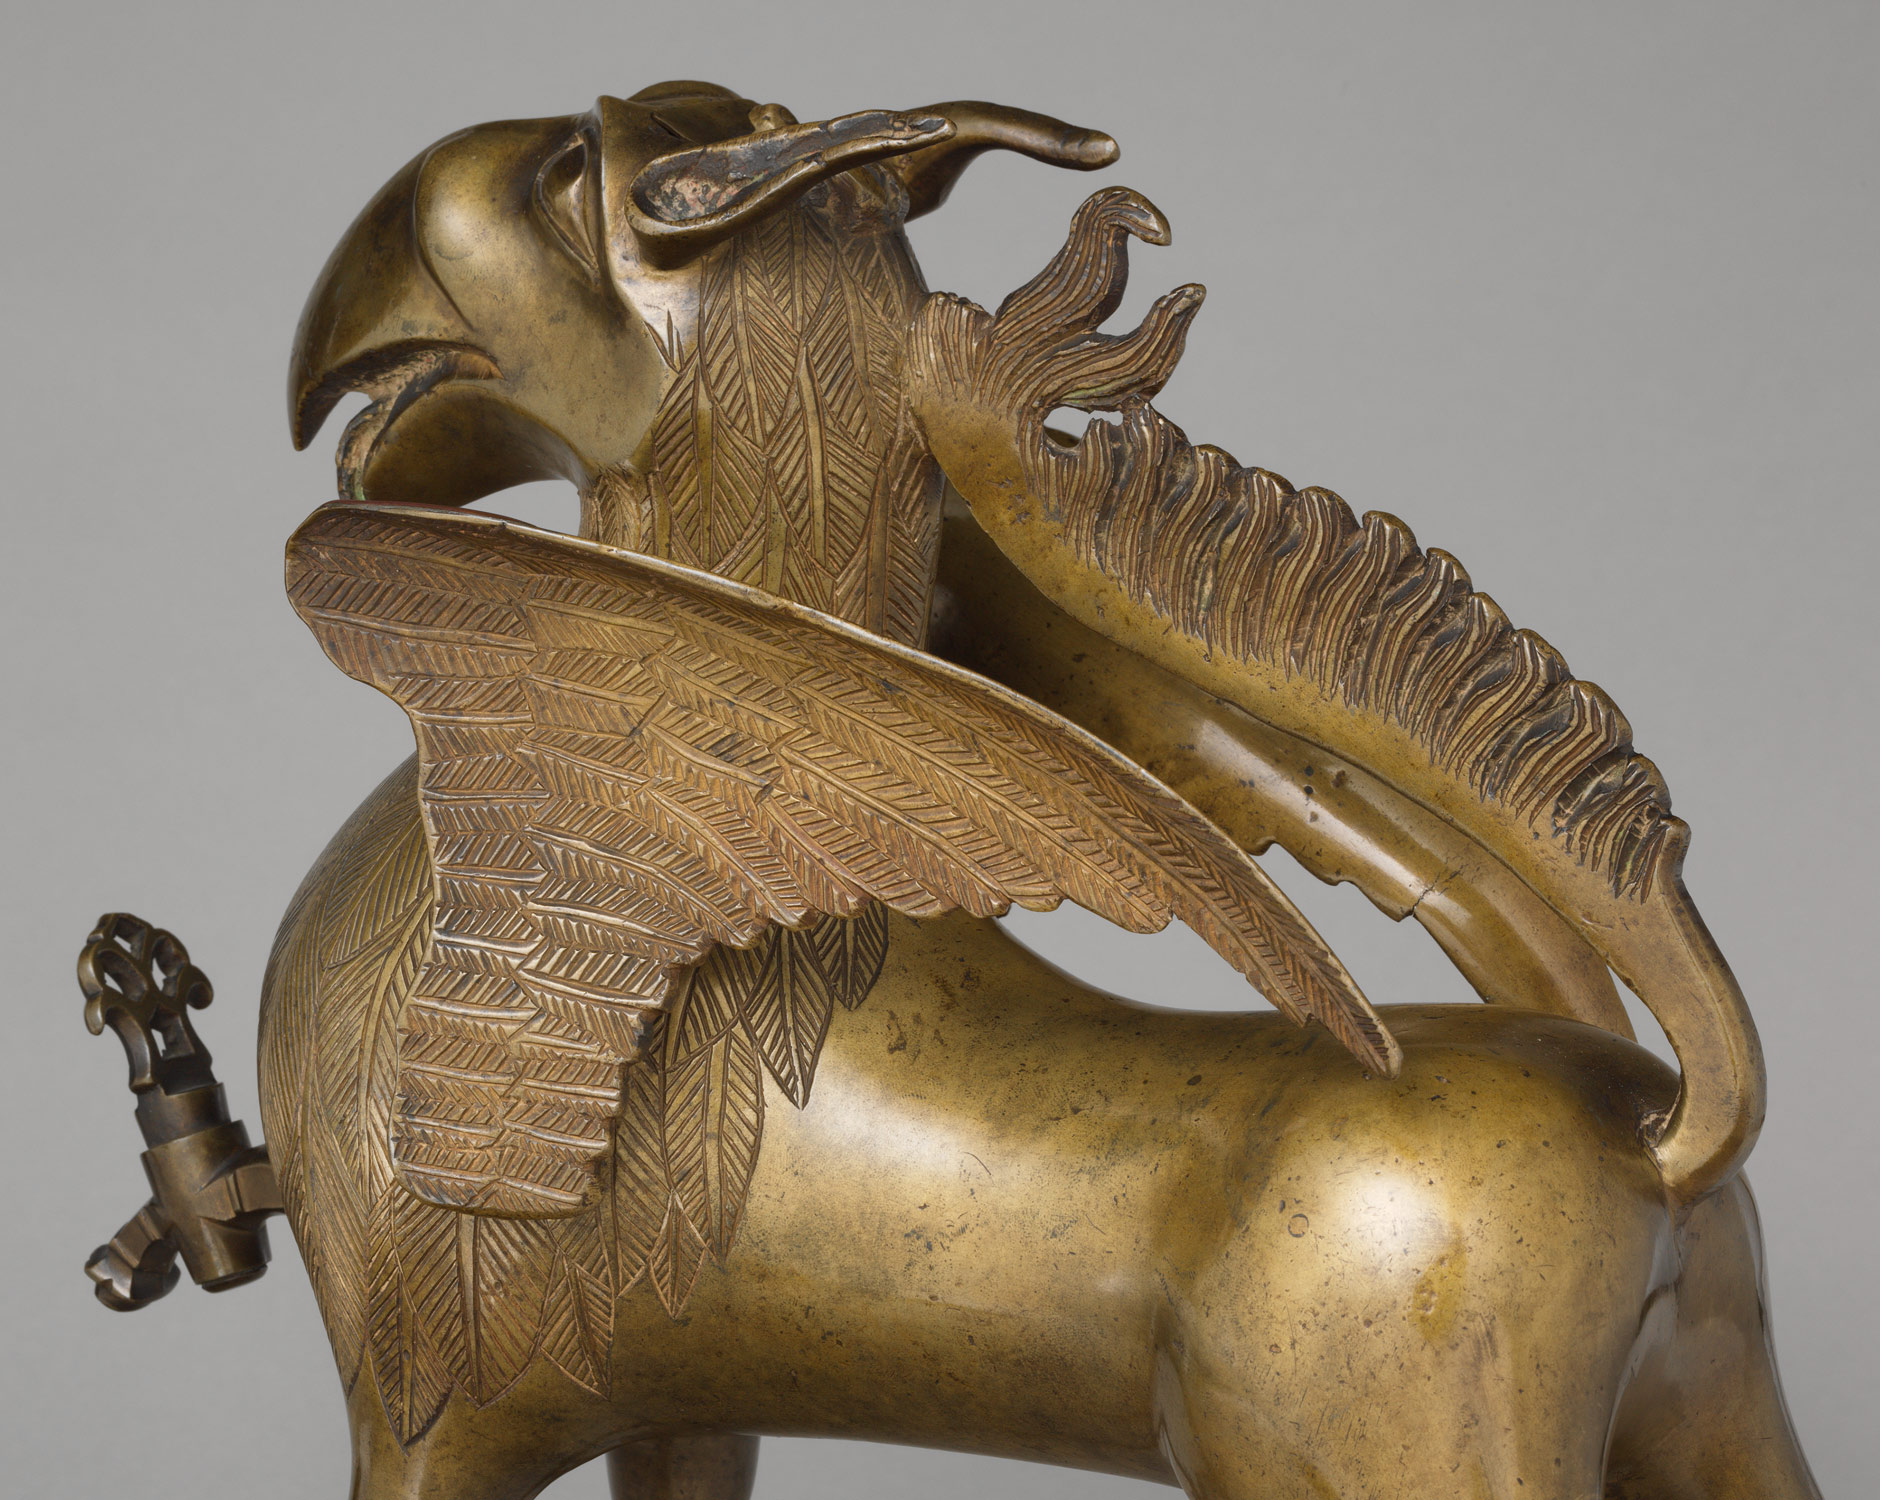 Aquamanile in the Form of a Griffin